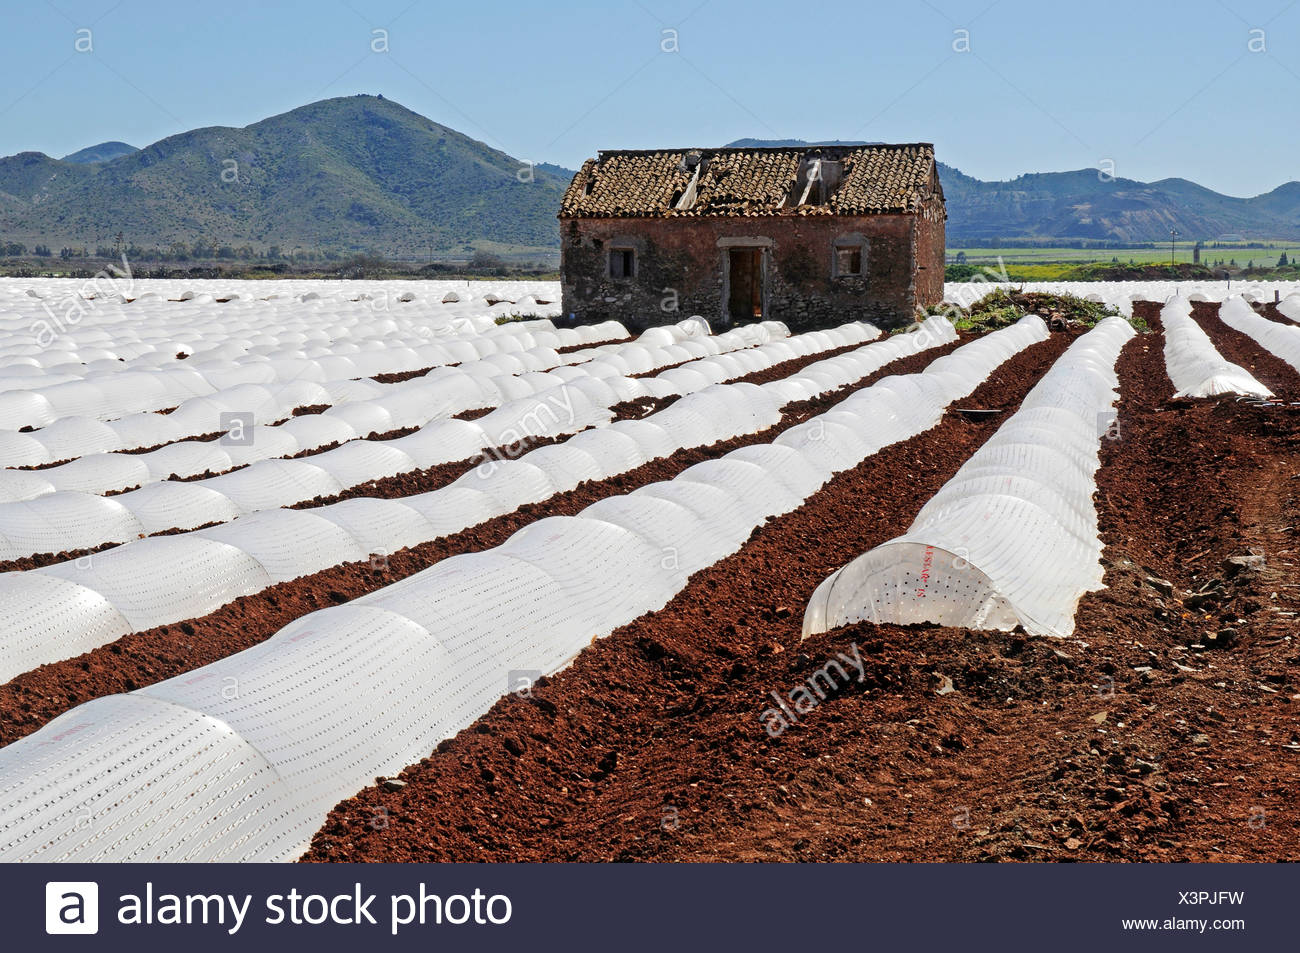 Arable land, cultivation, plantation, house, plastic sheeting, agriculture, Mar Menor, Murcia, Spain, Europe - Stock Image